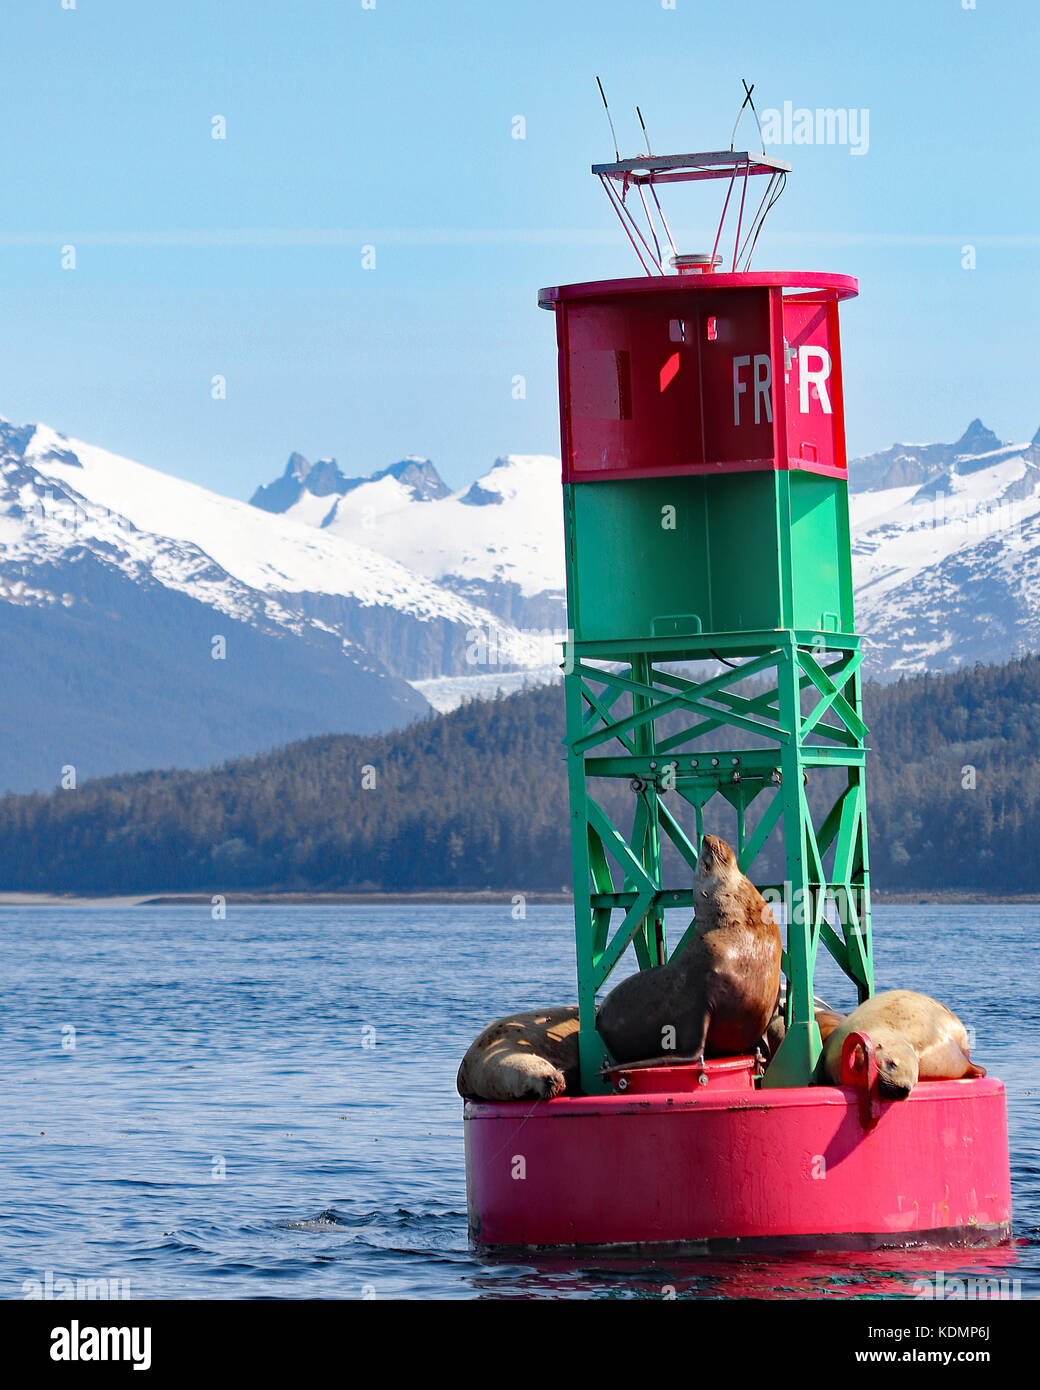 Adorable Sea Lions floating on buoy with mountain landscape background. Juneau, Alaska - Stock Image